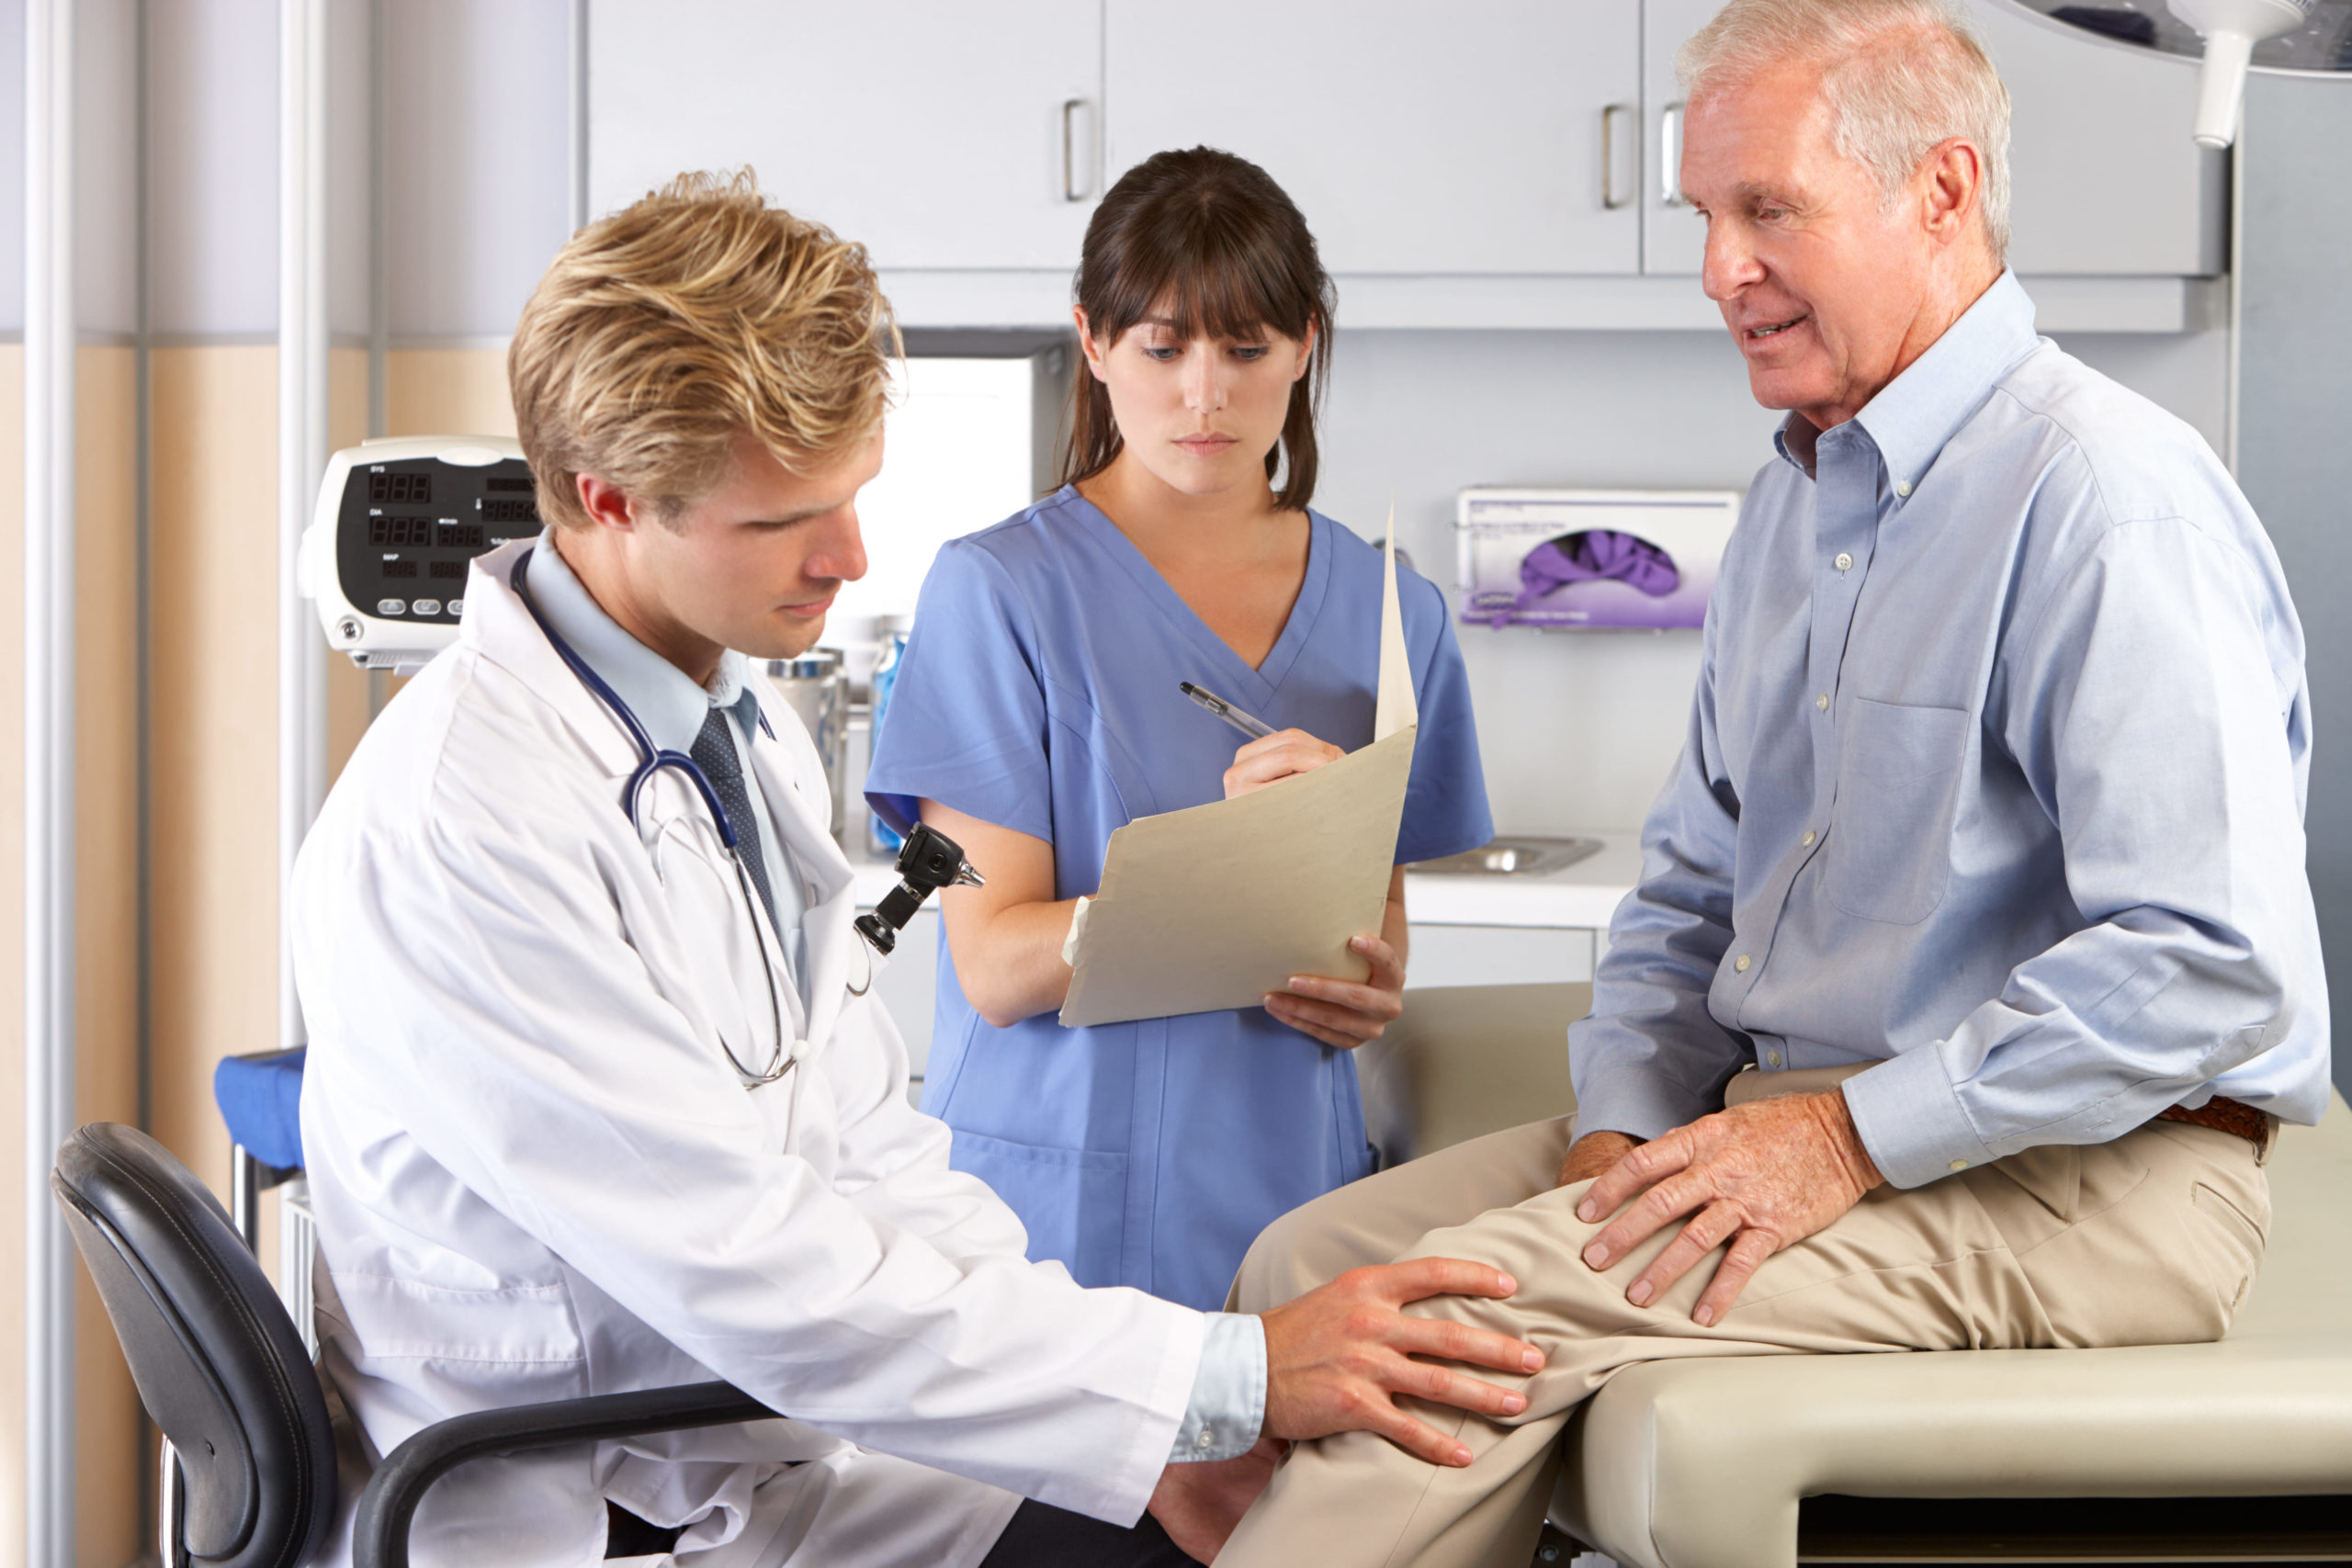 Traumatology Treatment at Quirónsalud Hospitals in Spain